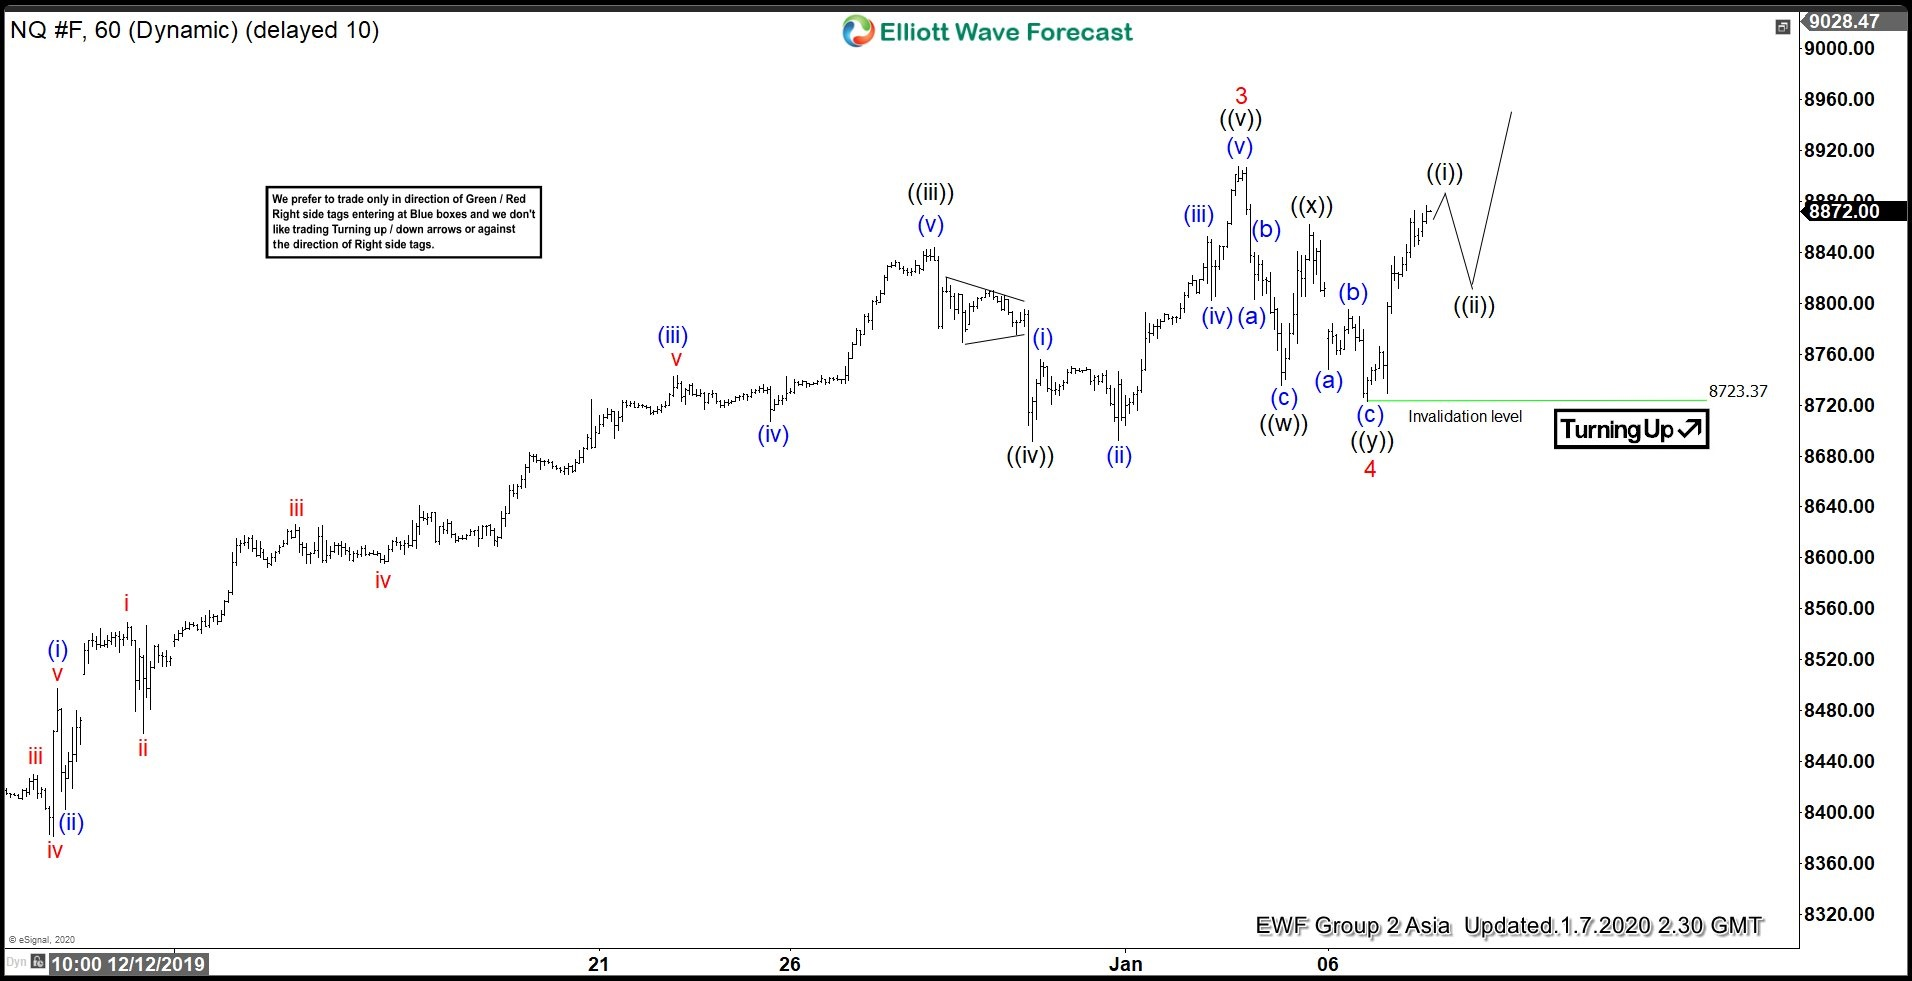 NQ_F 7 January 1 Hour Elliott Wave Update